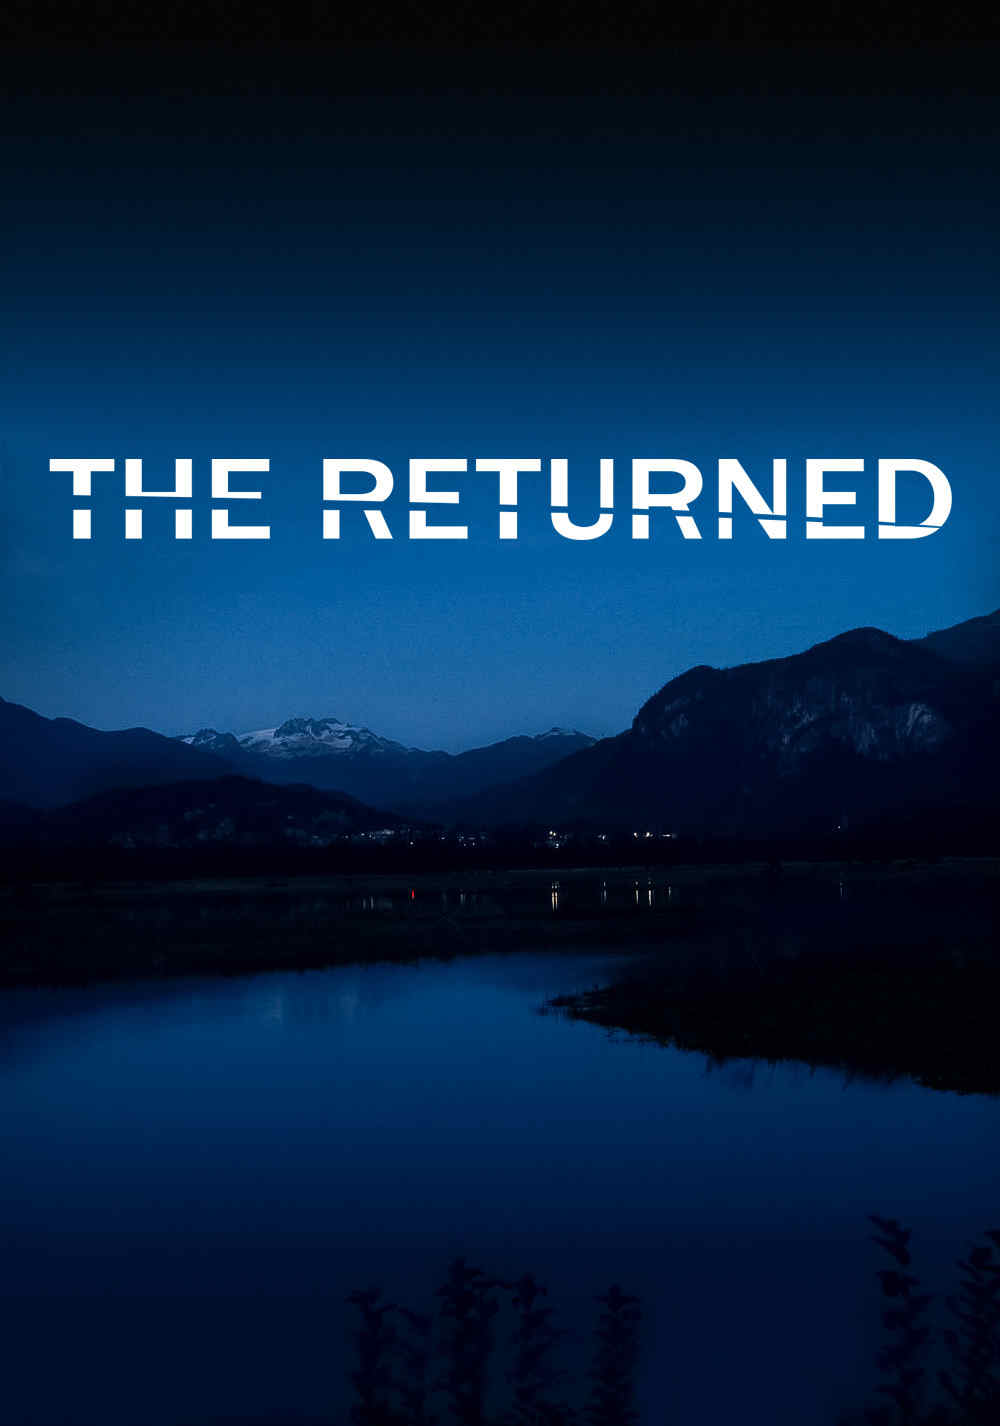 سریال THE RETURNED فصل 2